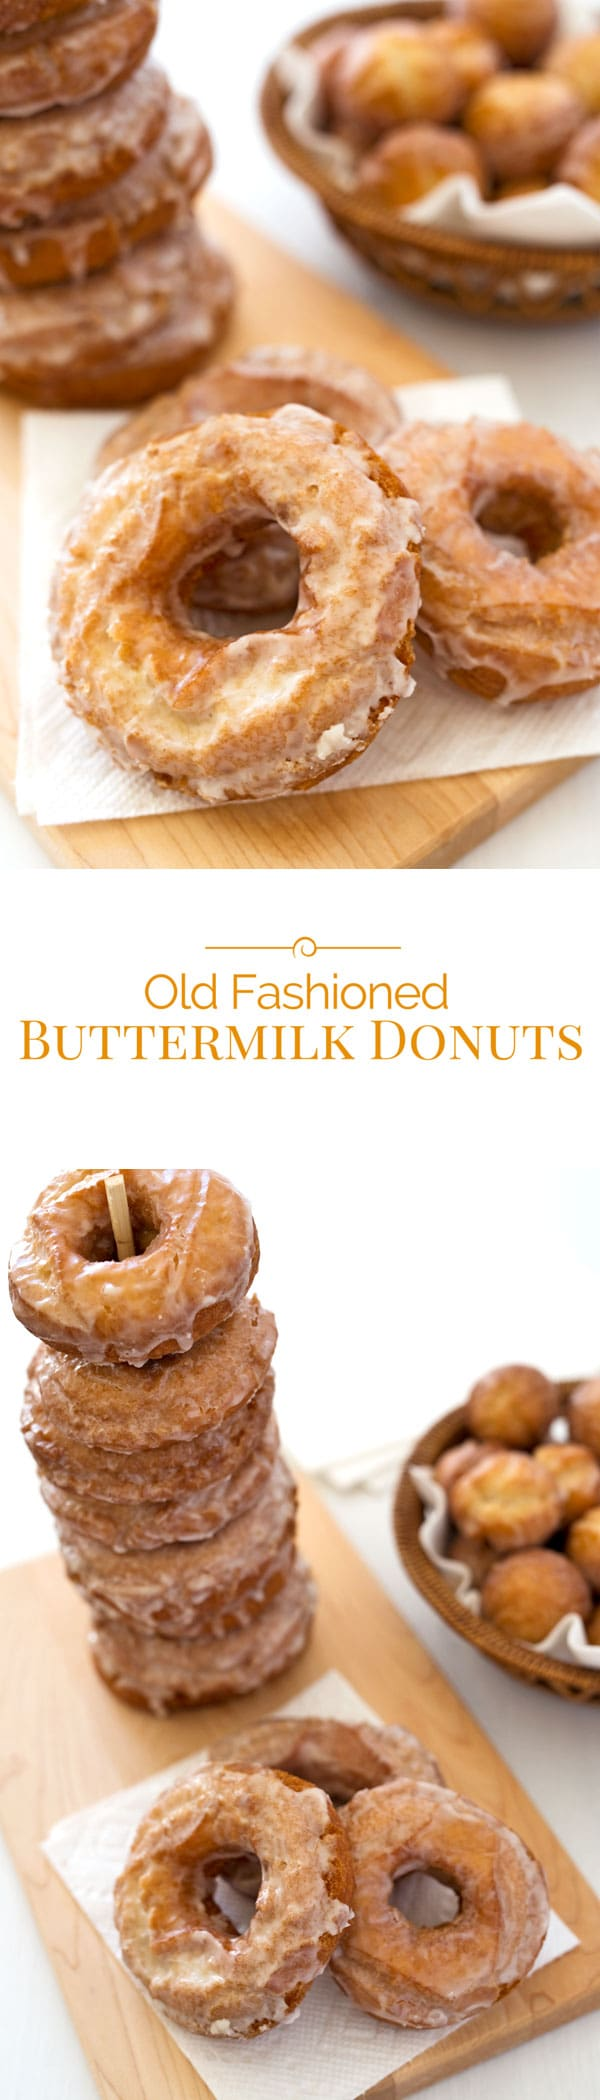 Hostess old fashioned glazed donuts 2